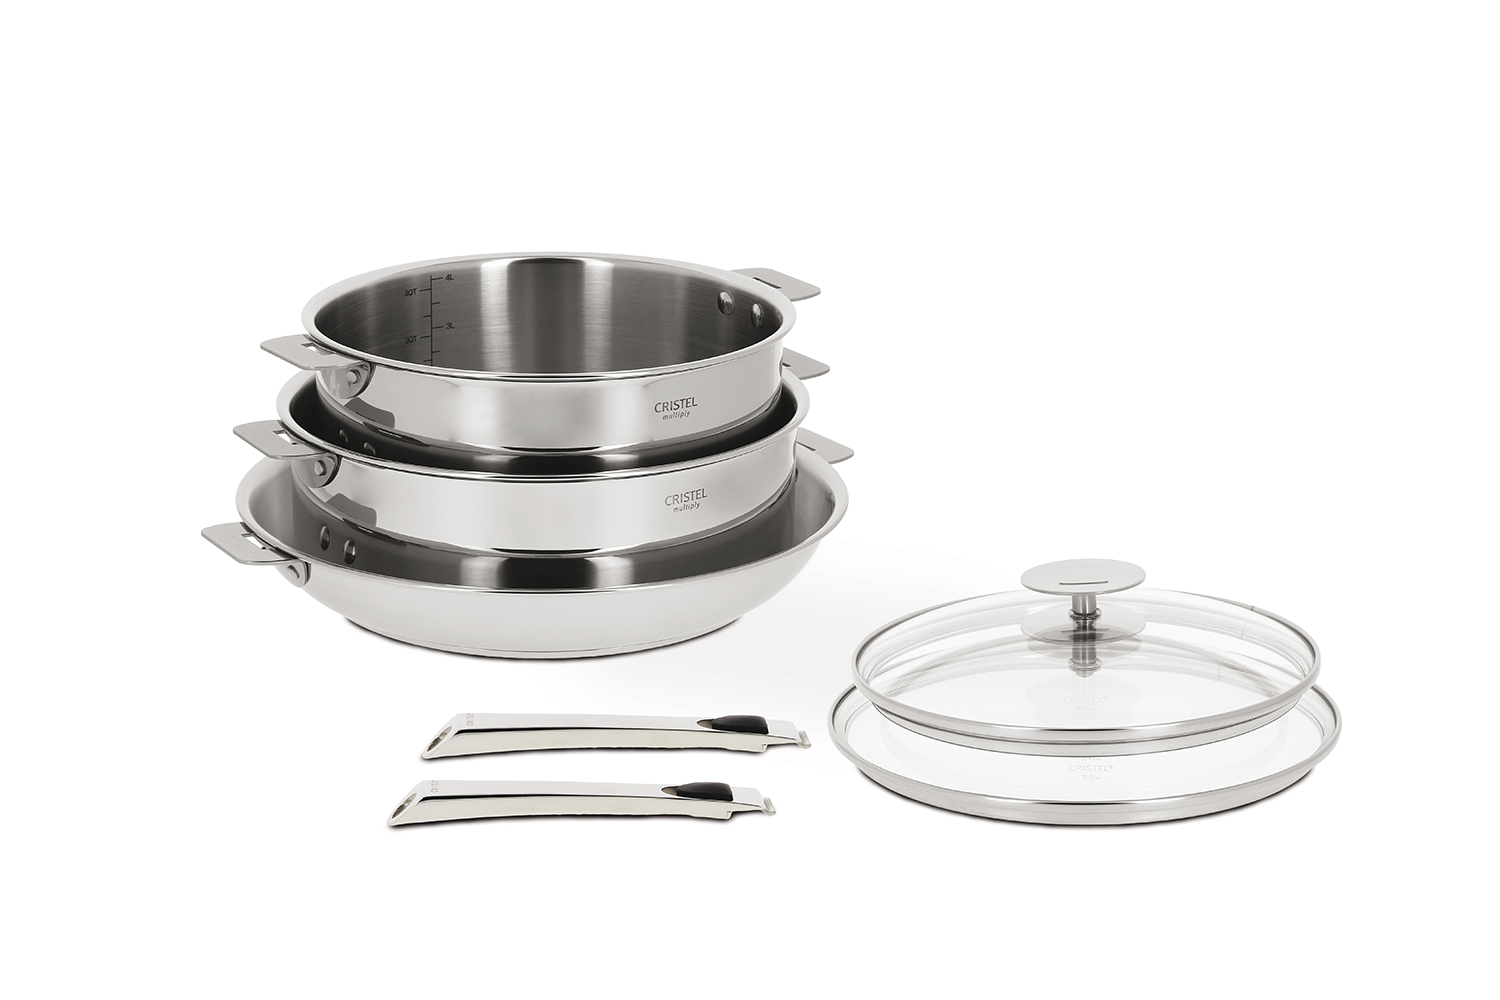 Cristel Casteline Stainless Steel 7 Piece Cookware Set, Removable Handle